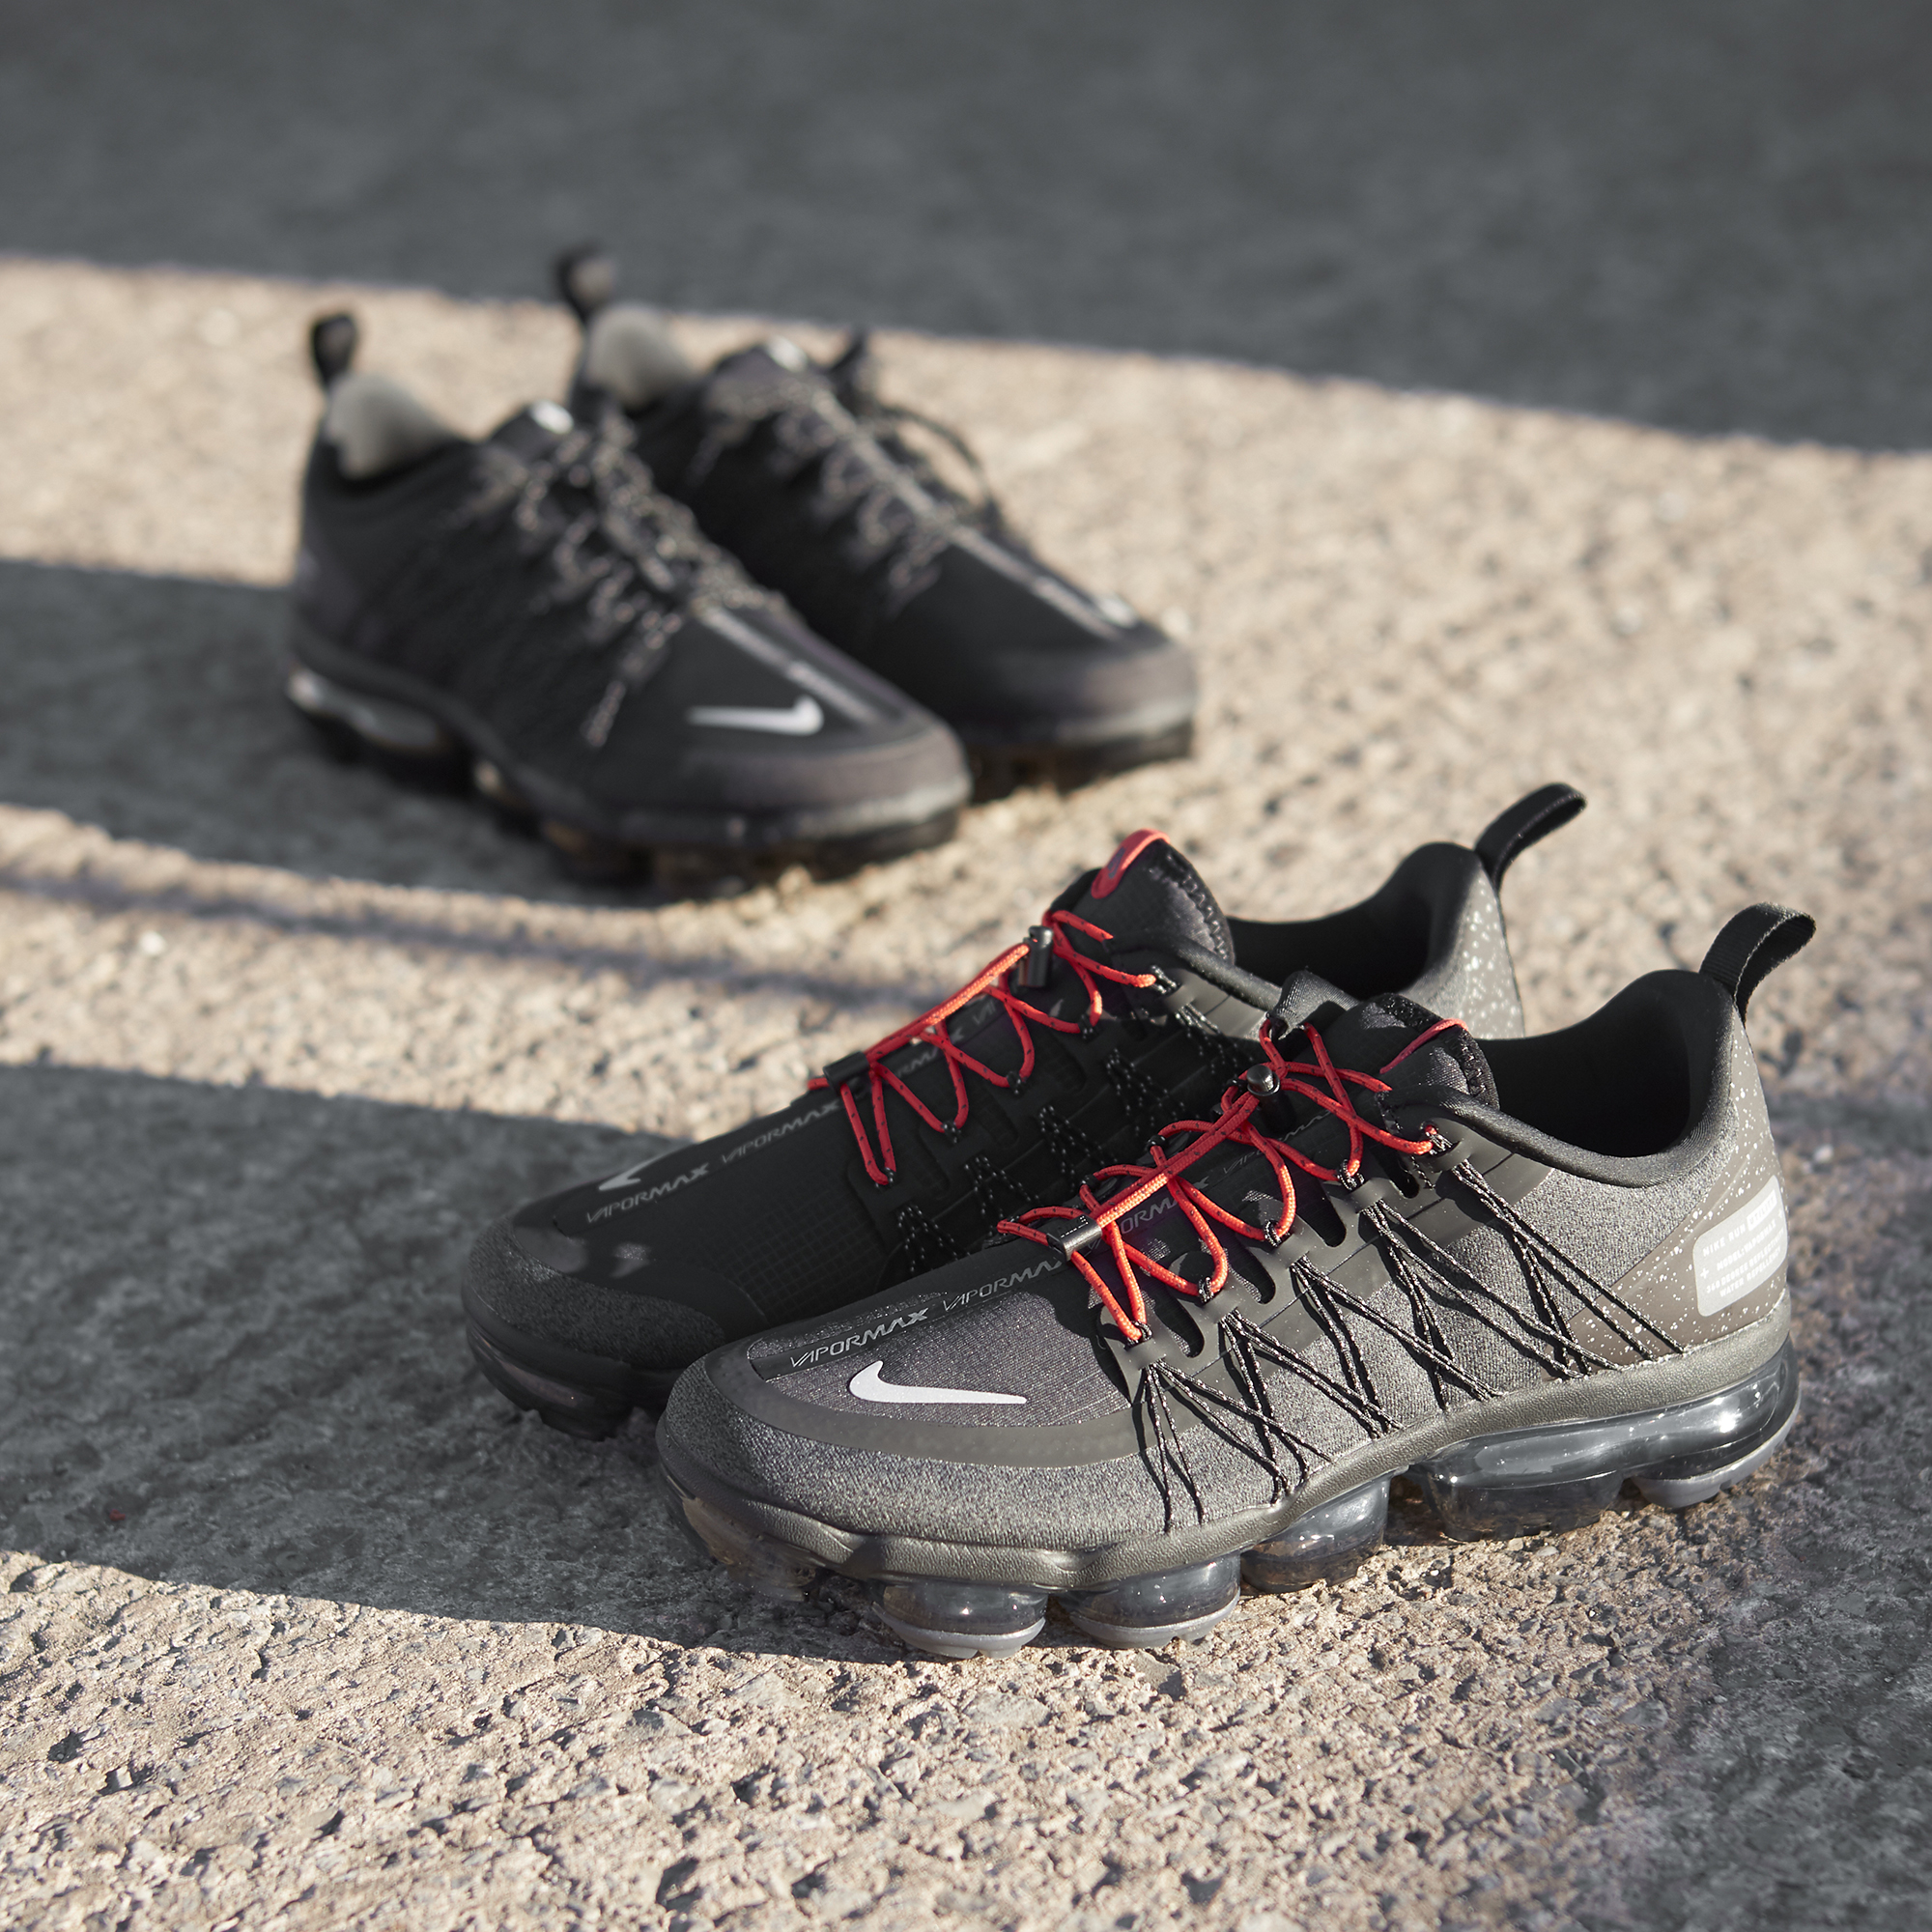 timeless design 94d70 39d77 Nike Air VaporMax Utility Run 'Black/Black' and 'Olive/Black ...